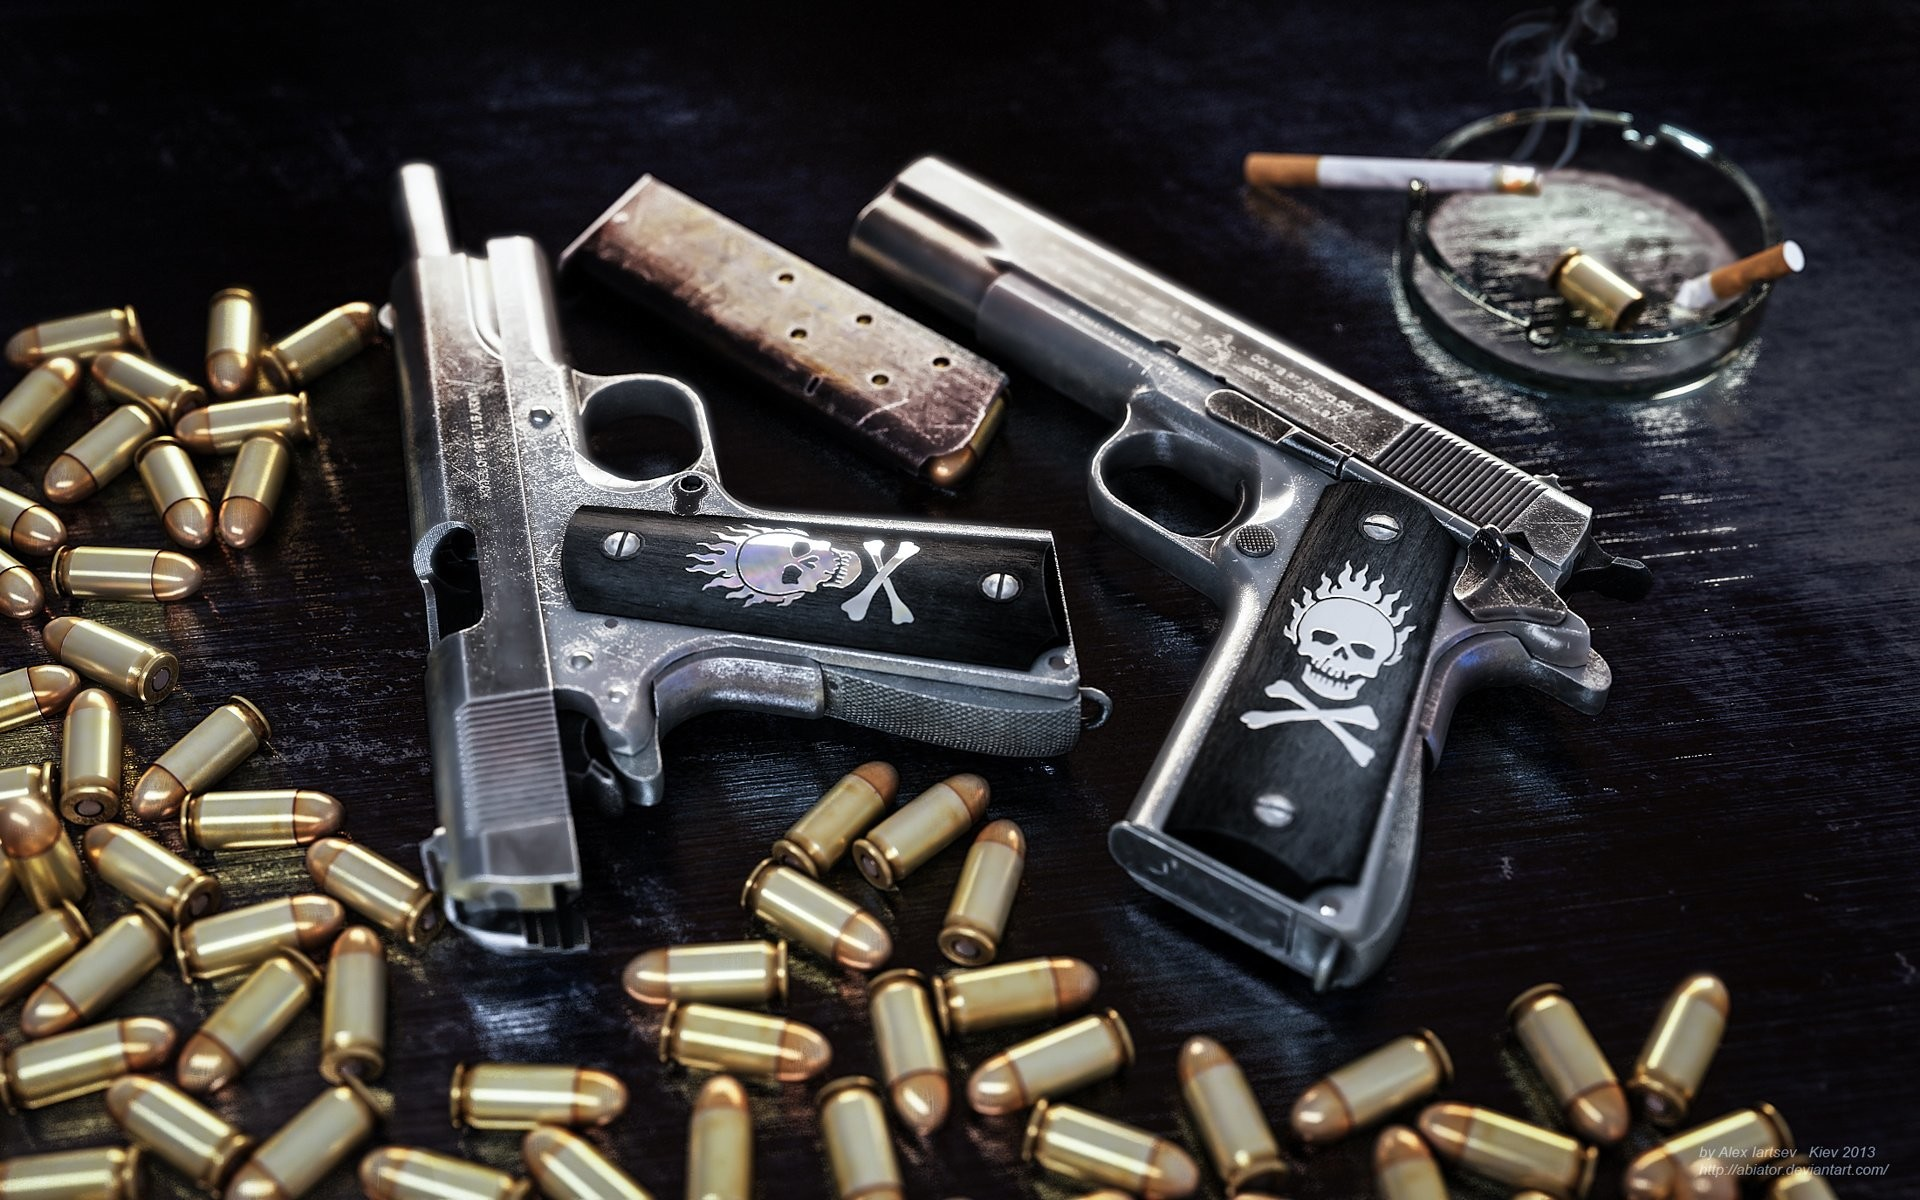 1920x1200 pistol ammunition clip colt ammo weapon gun skull wallpaper background .